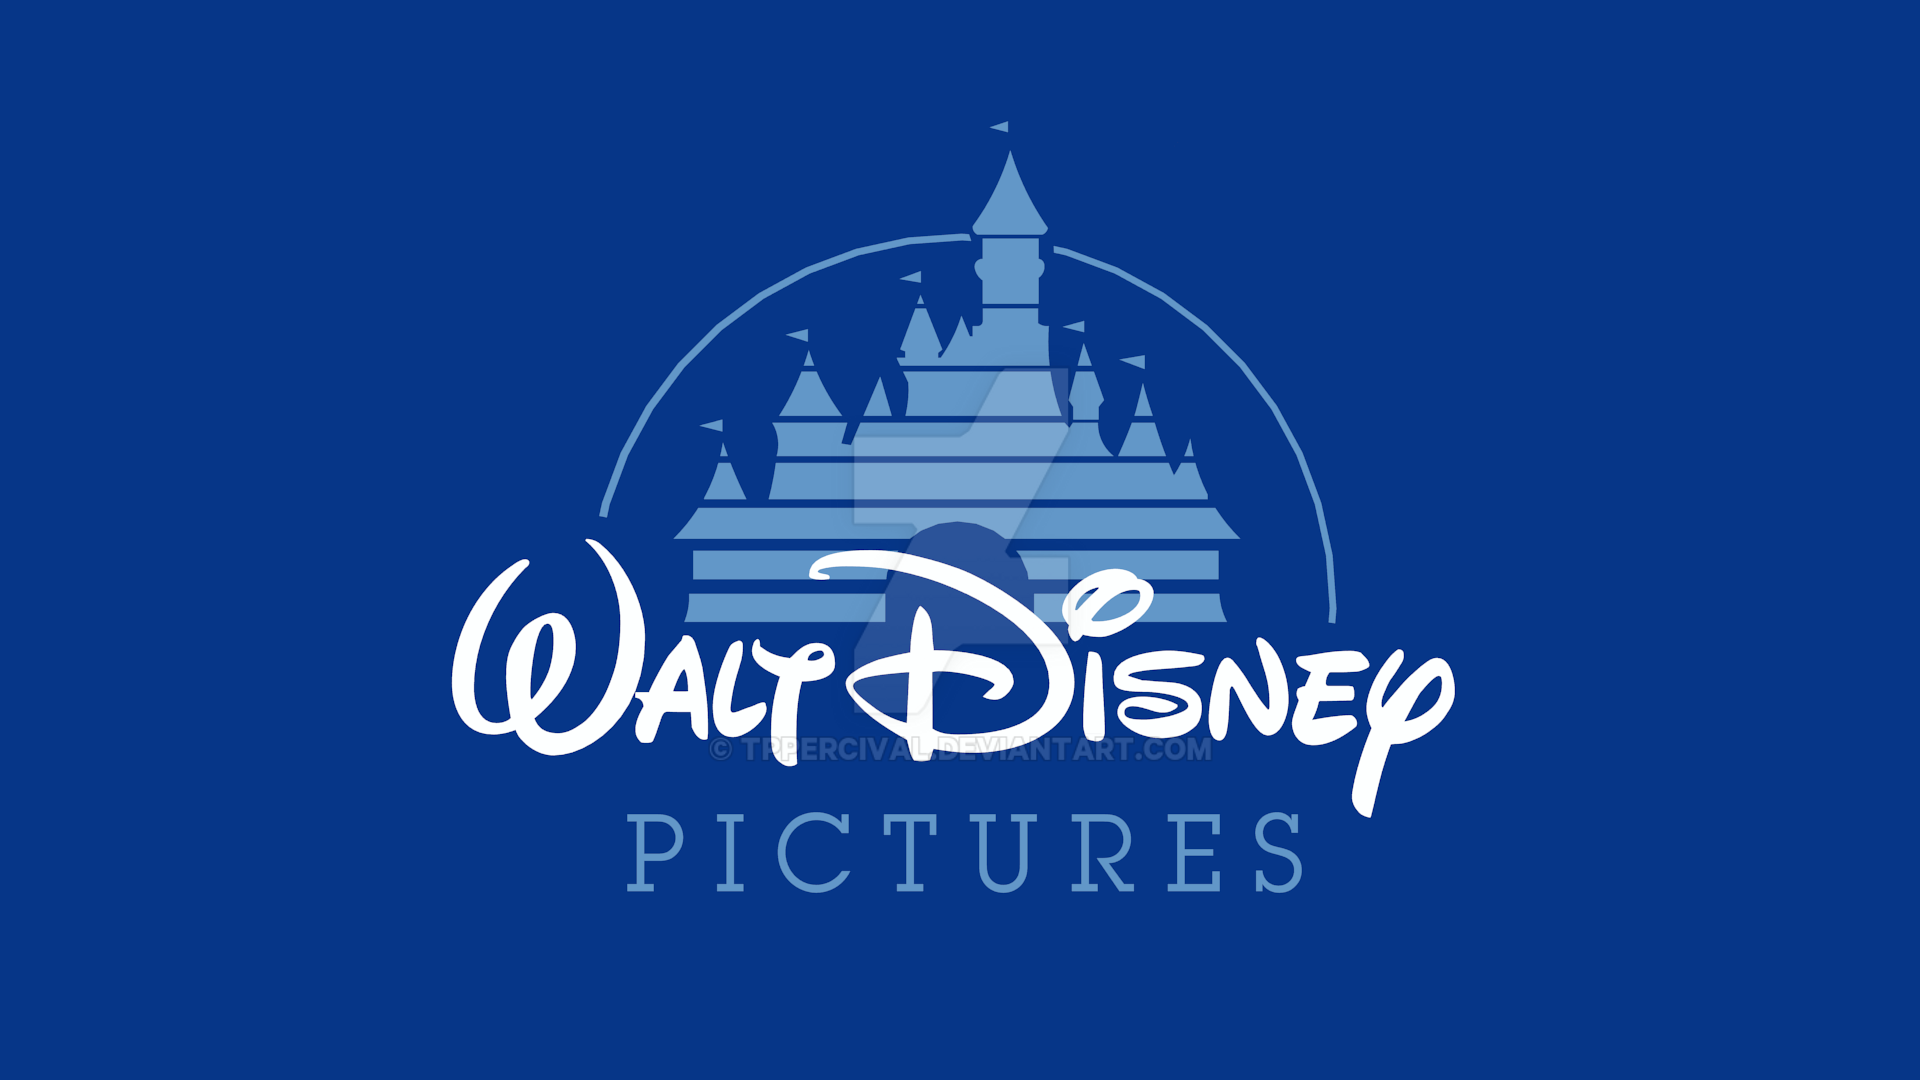 walt disney pictures 19902006 logo remake by tppercival